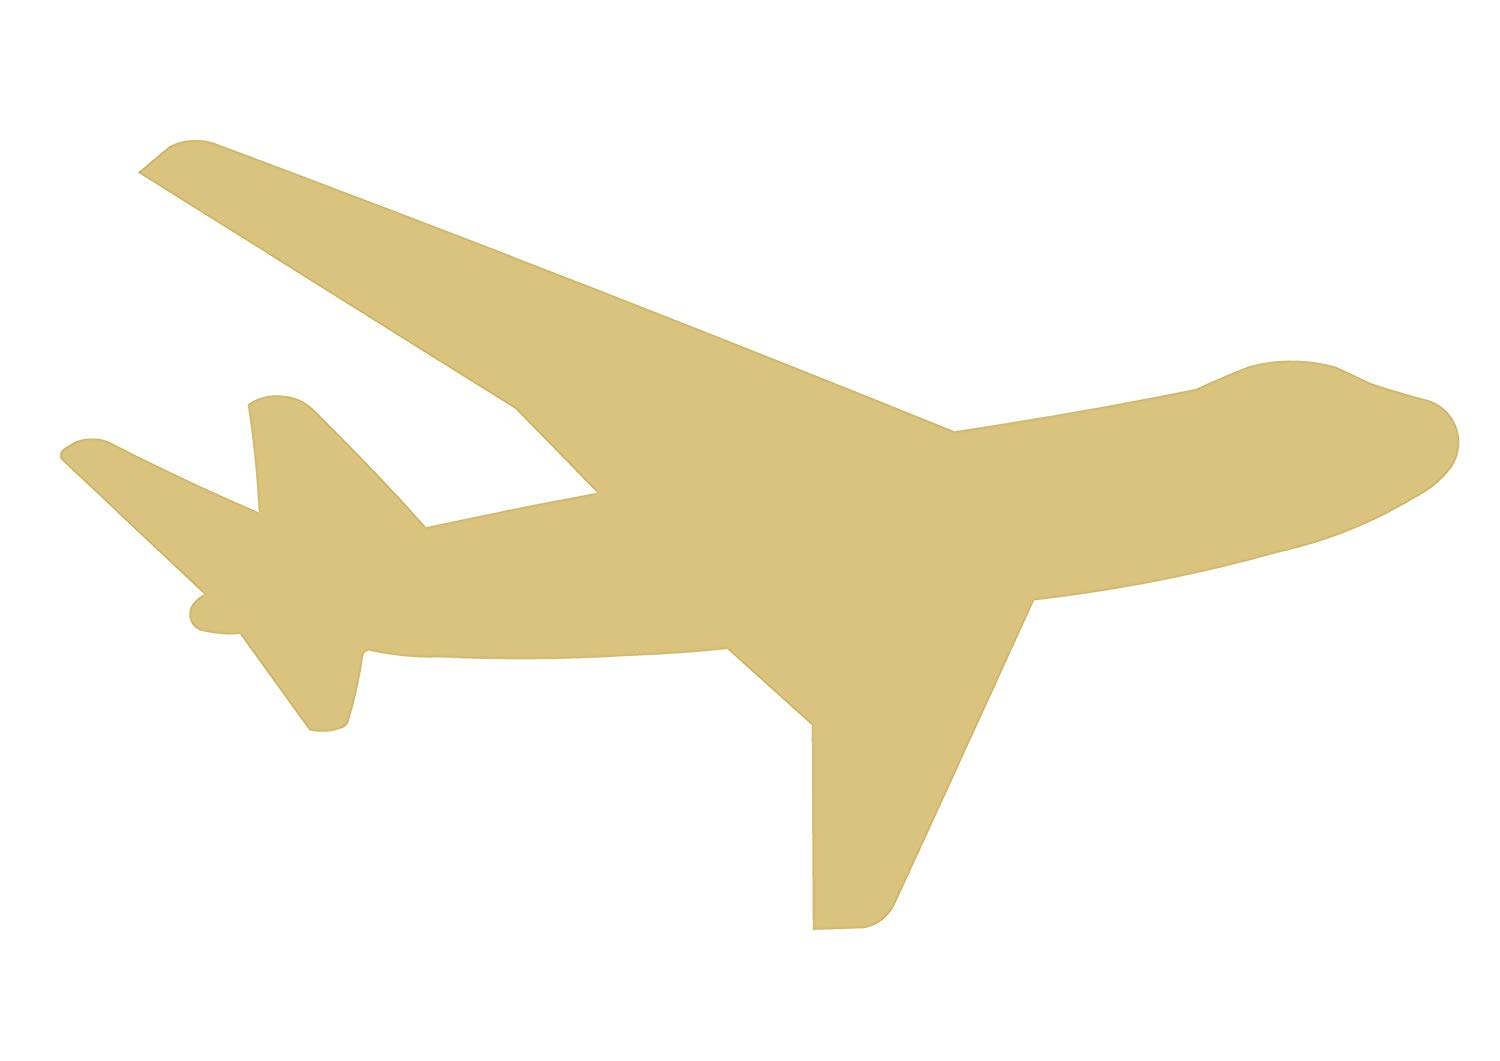 Air plane cut out clipart vector freeuse stock Amazon.com: Airplane Cutout Unfinished Wood Boeing Airbus Jet ... vector freeuse stock